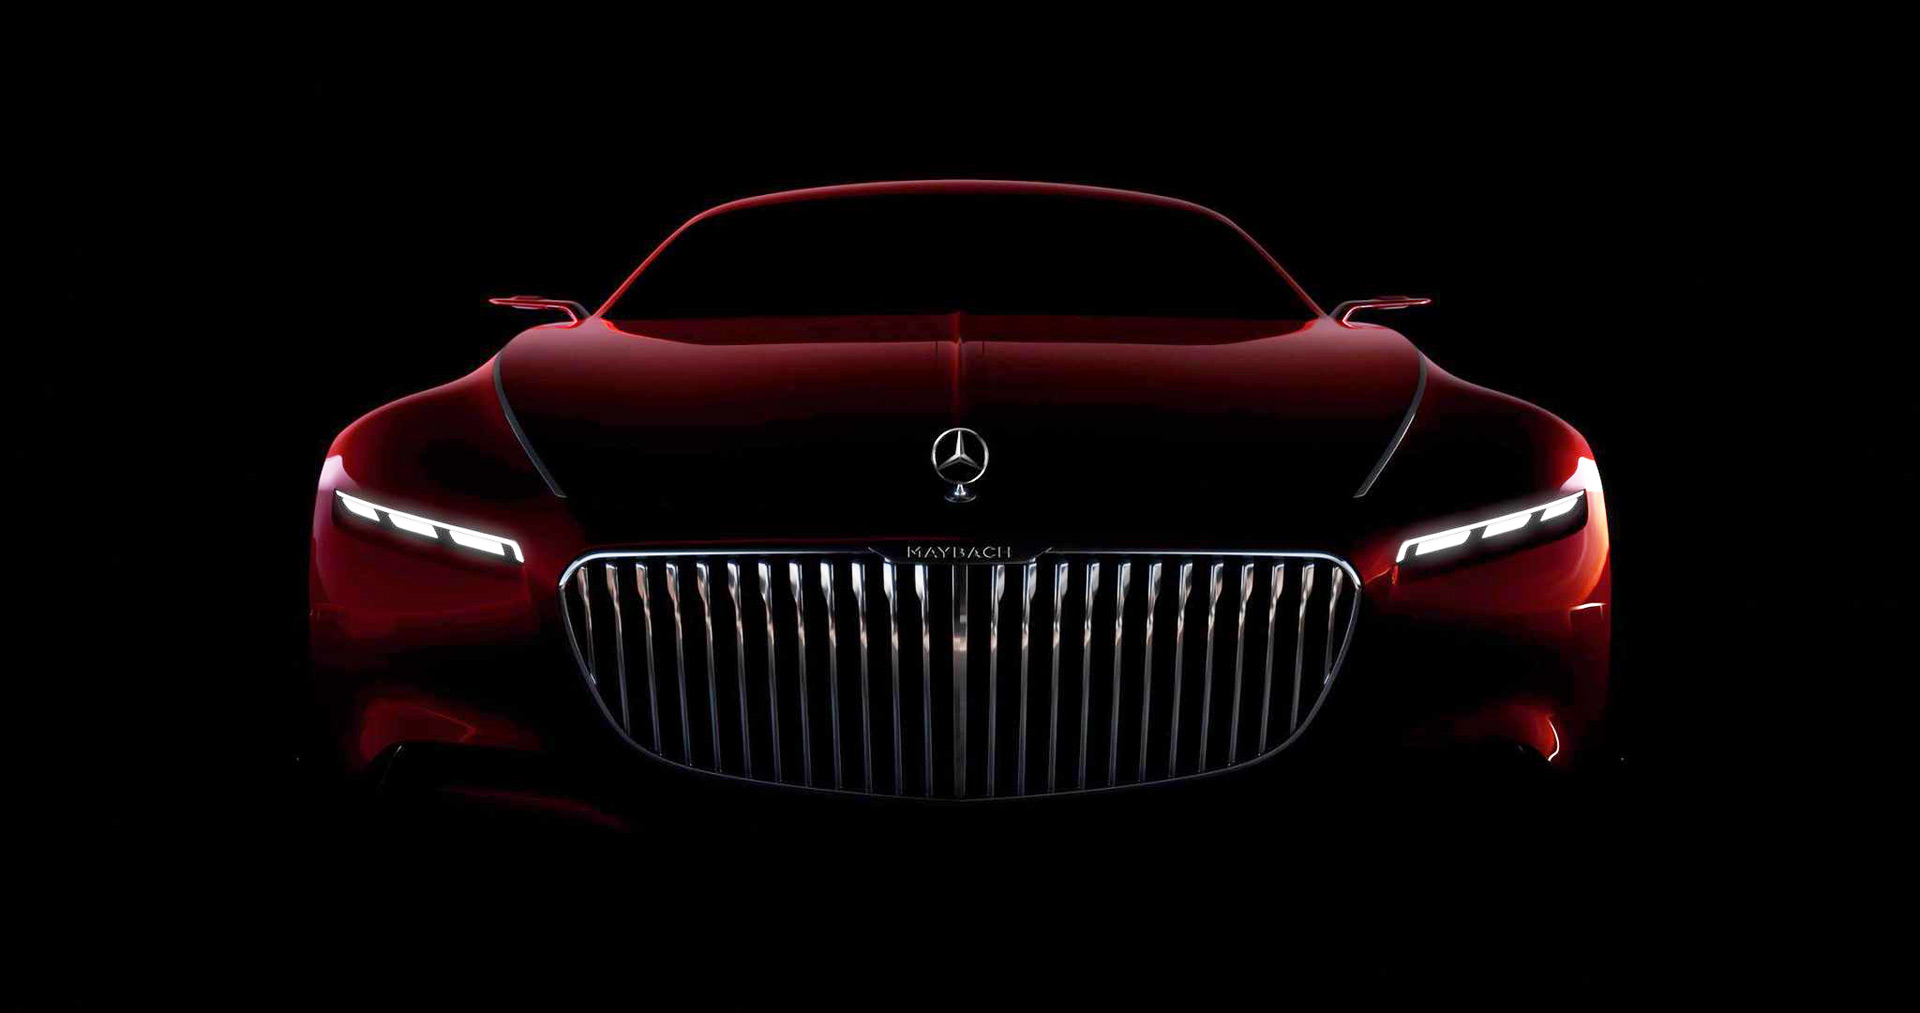 Vision Mercedes Maybach 6 Concept Teased Ahead Of Monterey